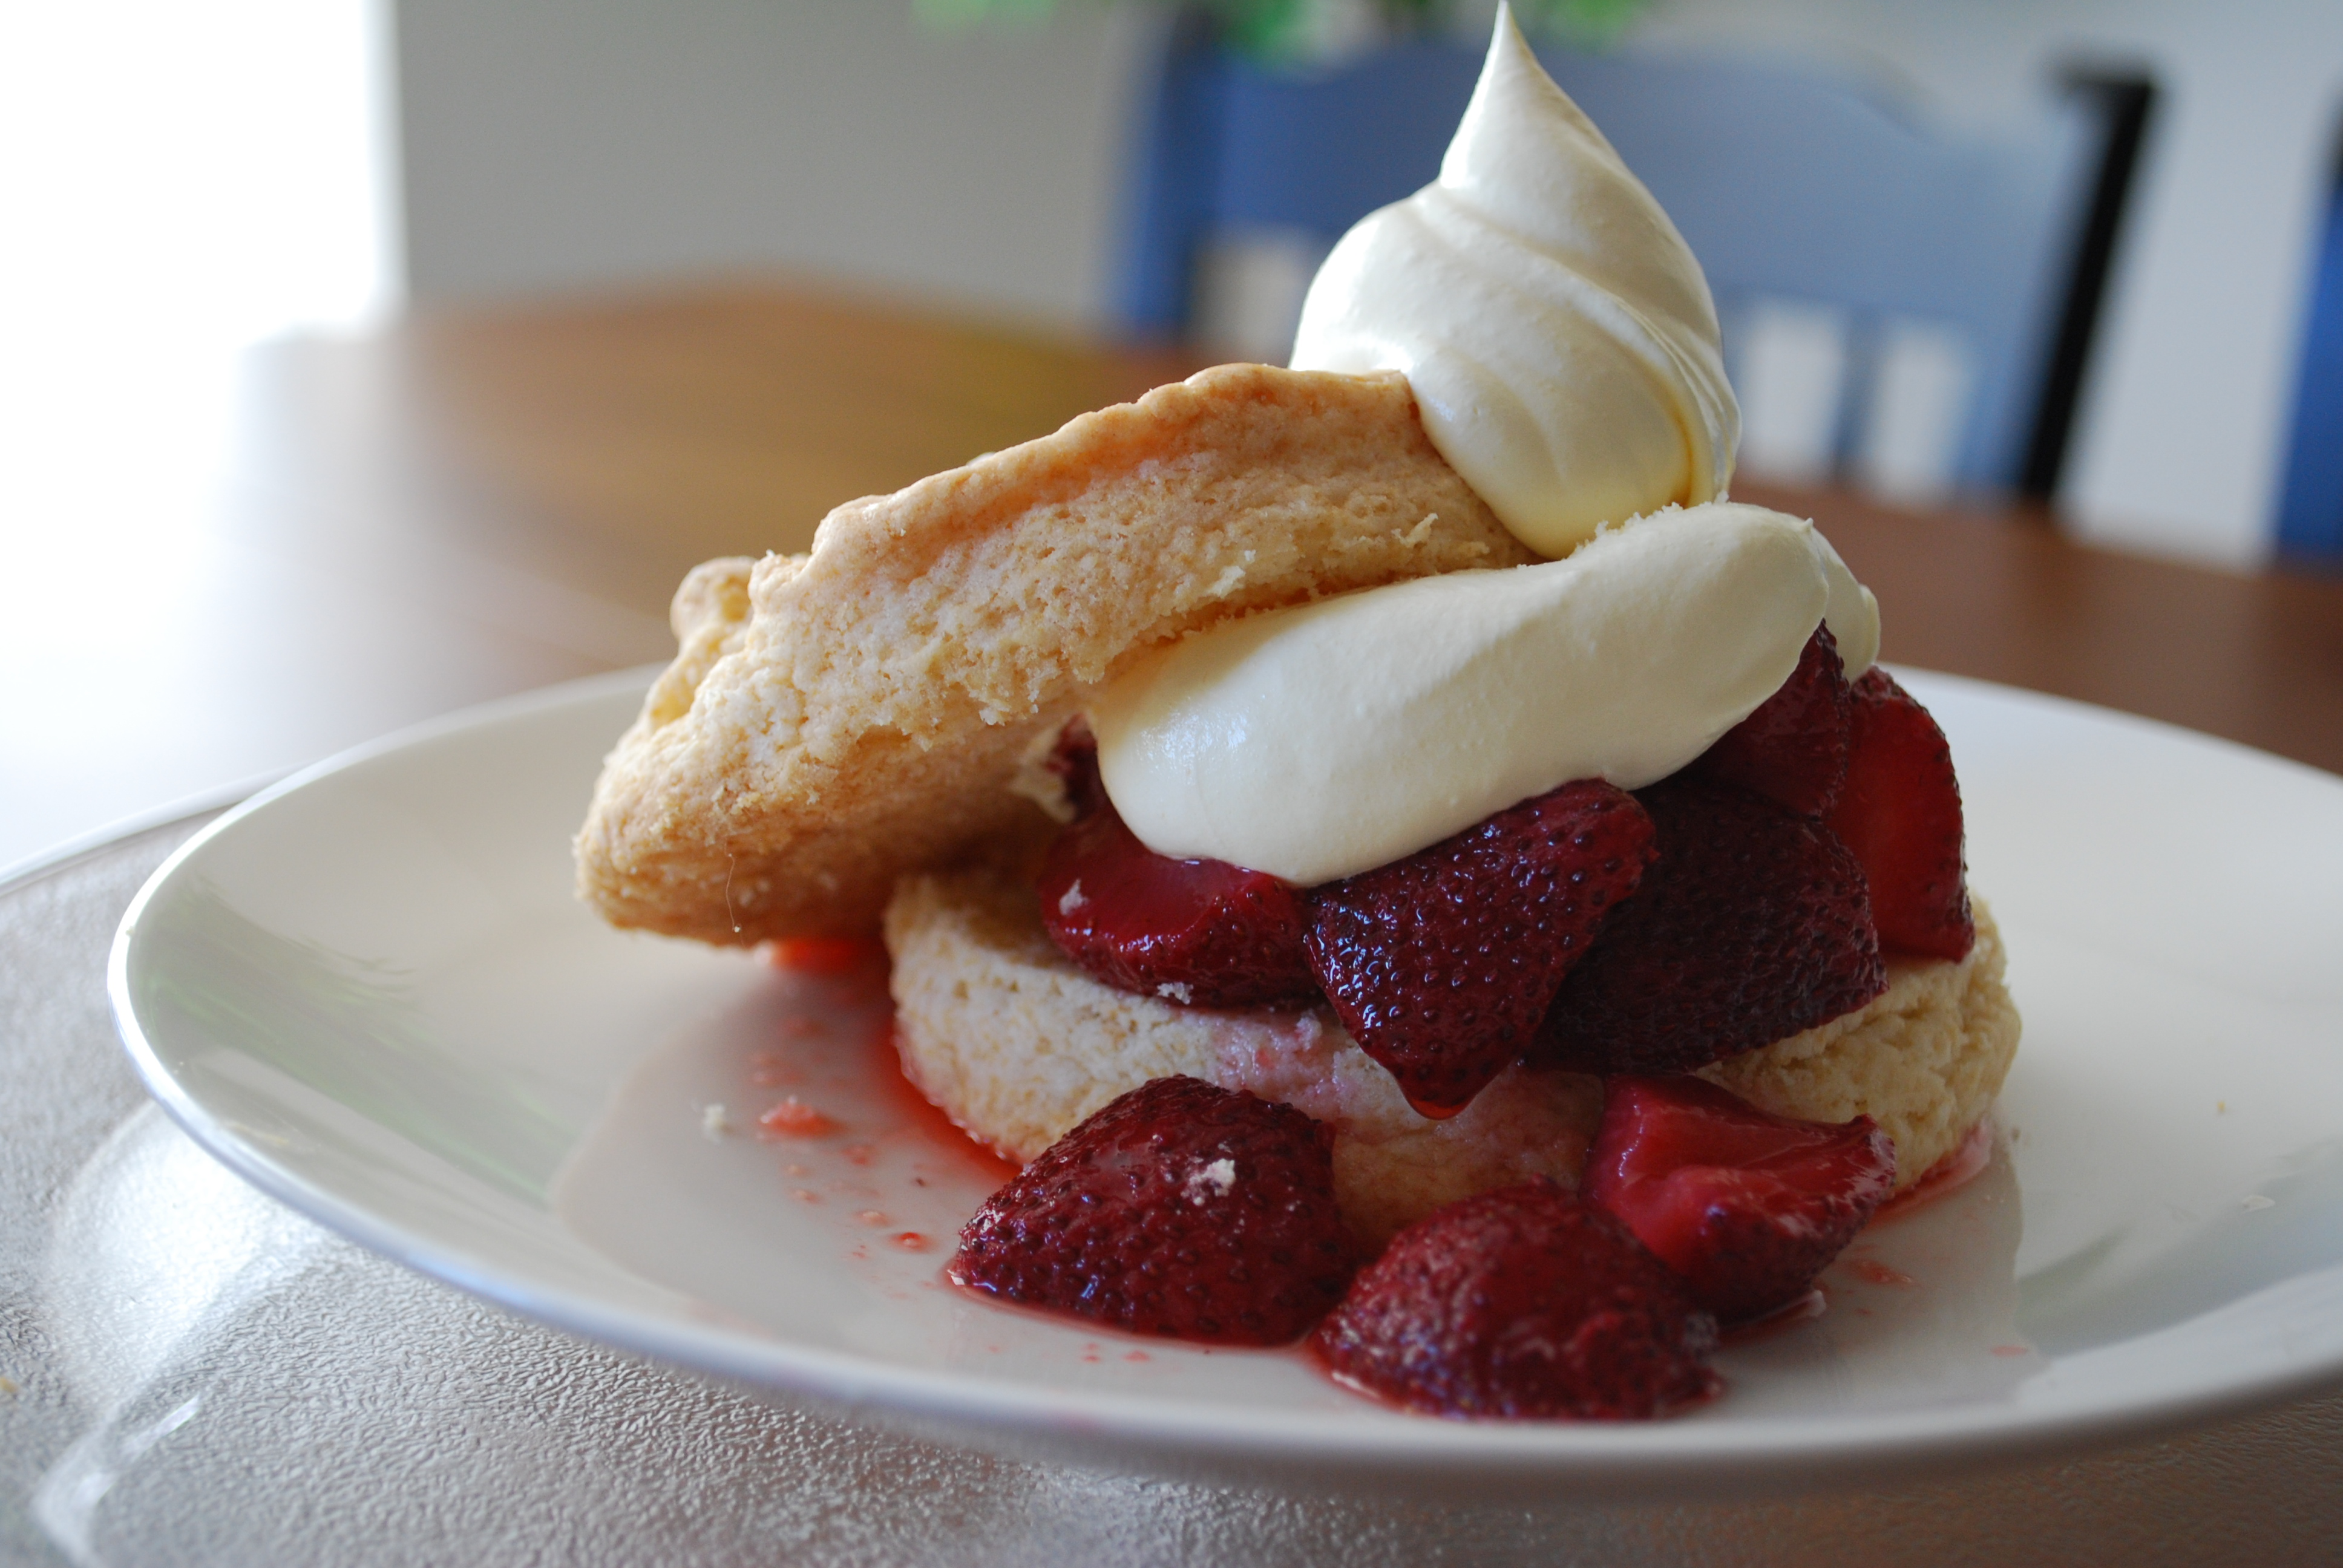 Strawberry Shortcake with French Vanilla Whipped Cream